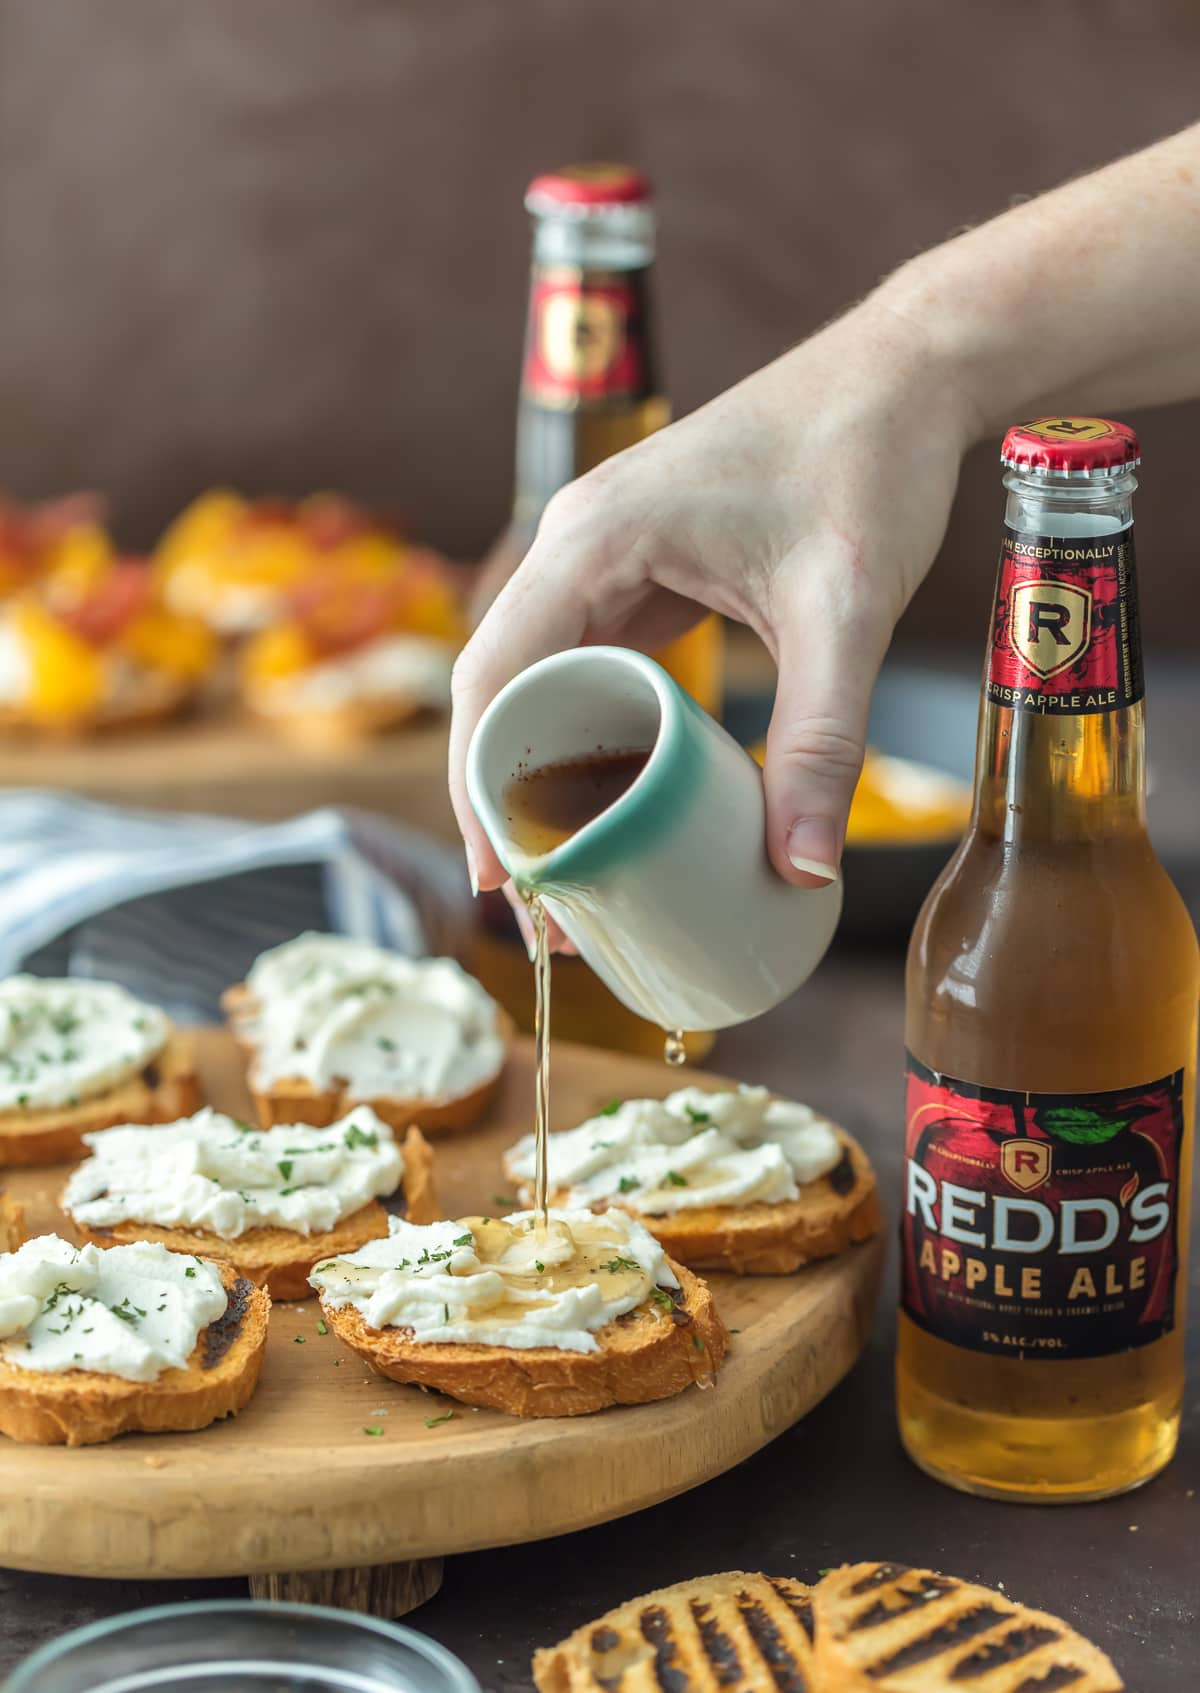 Goat Cheese Crostini on a wooden serving platter, with two Redd's Apple Ales